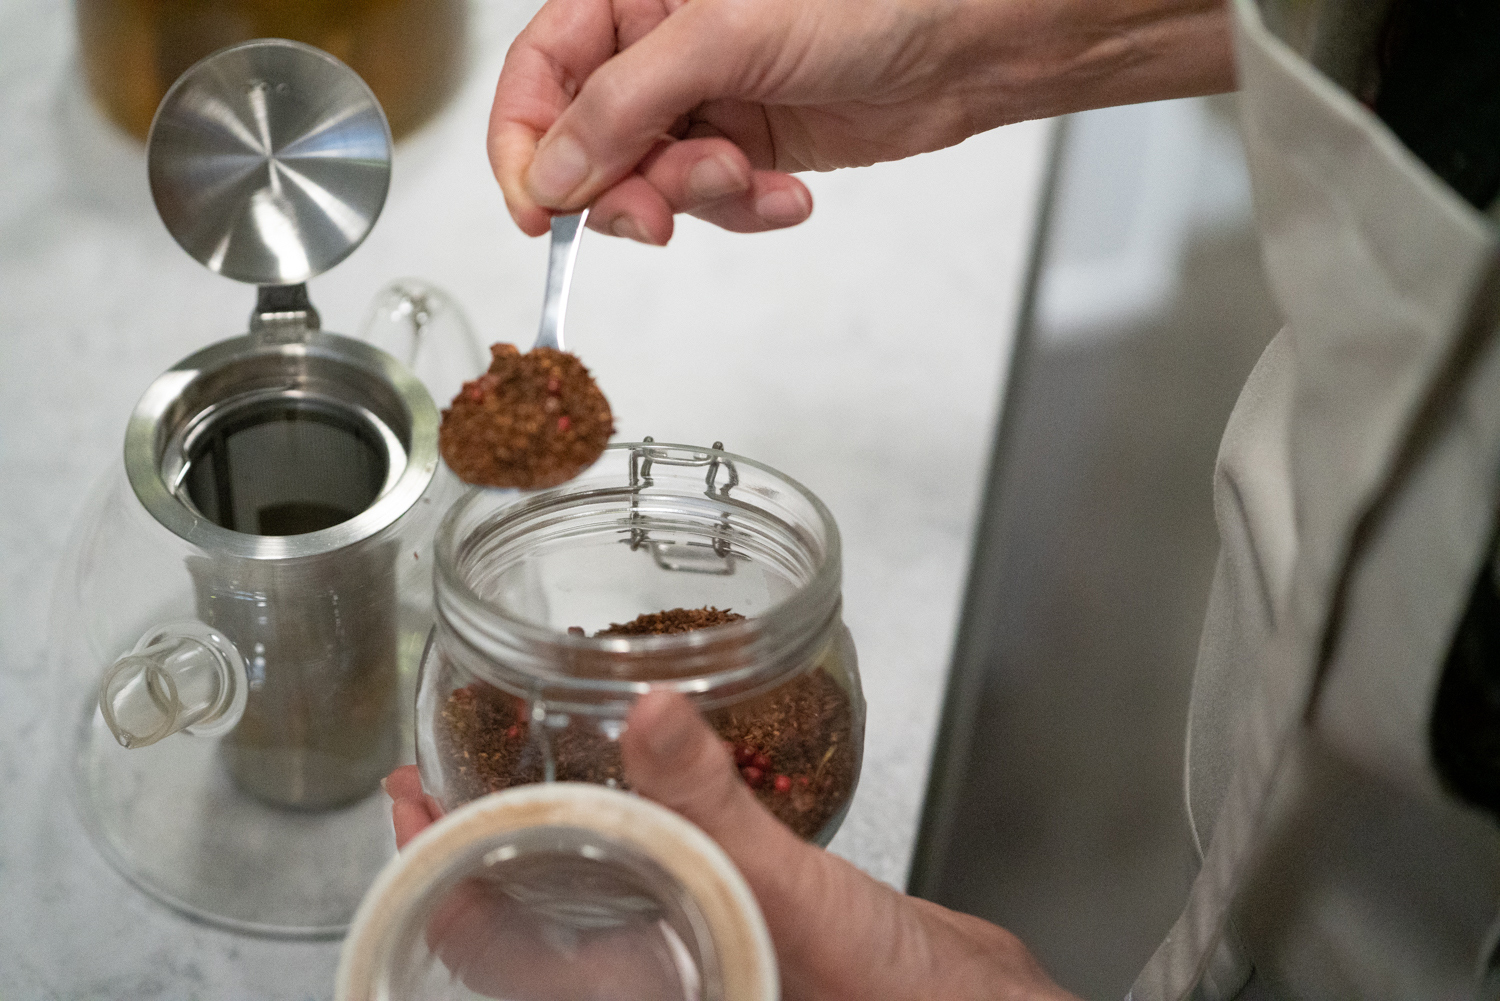 A staff member scoops tea leaves into a container to prepare tea at Botte Chai Bar in Saskatoon Saskatchewan.